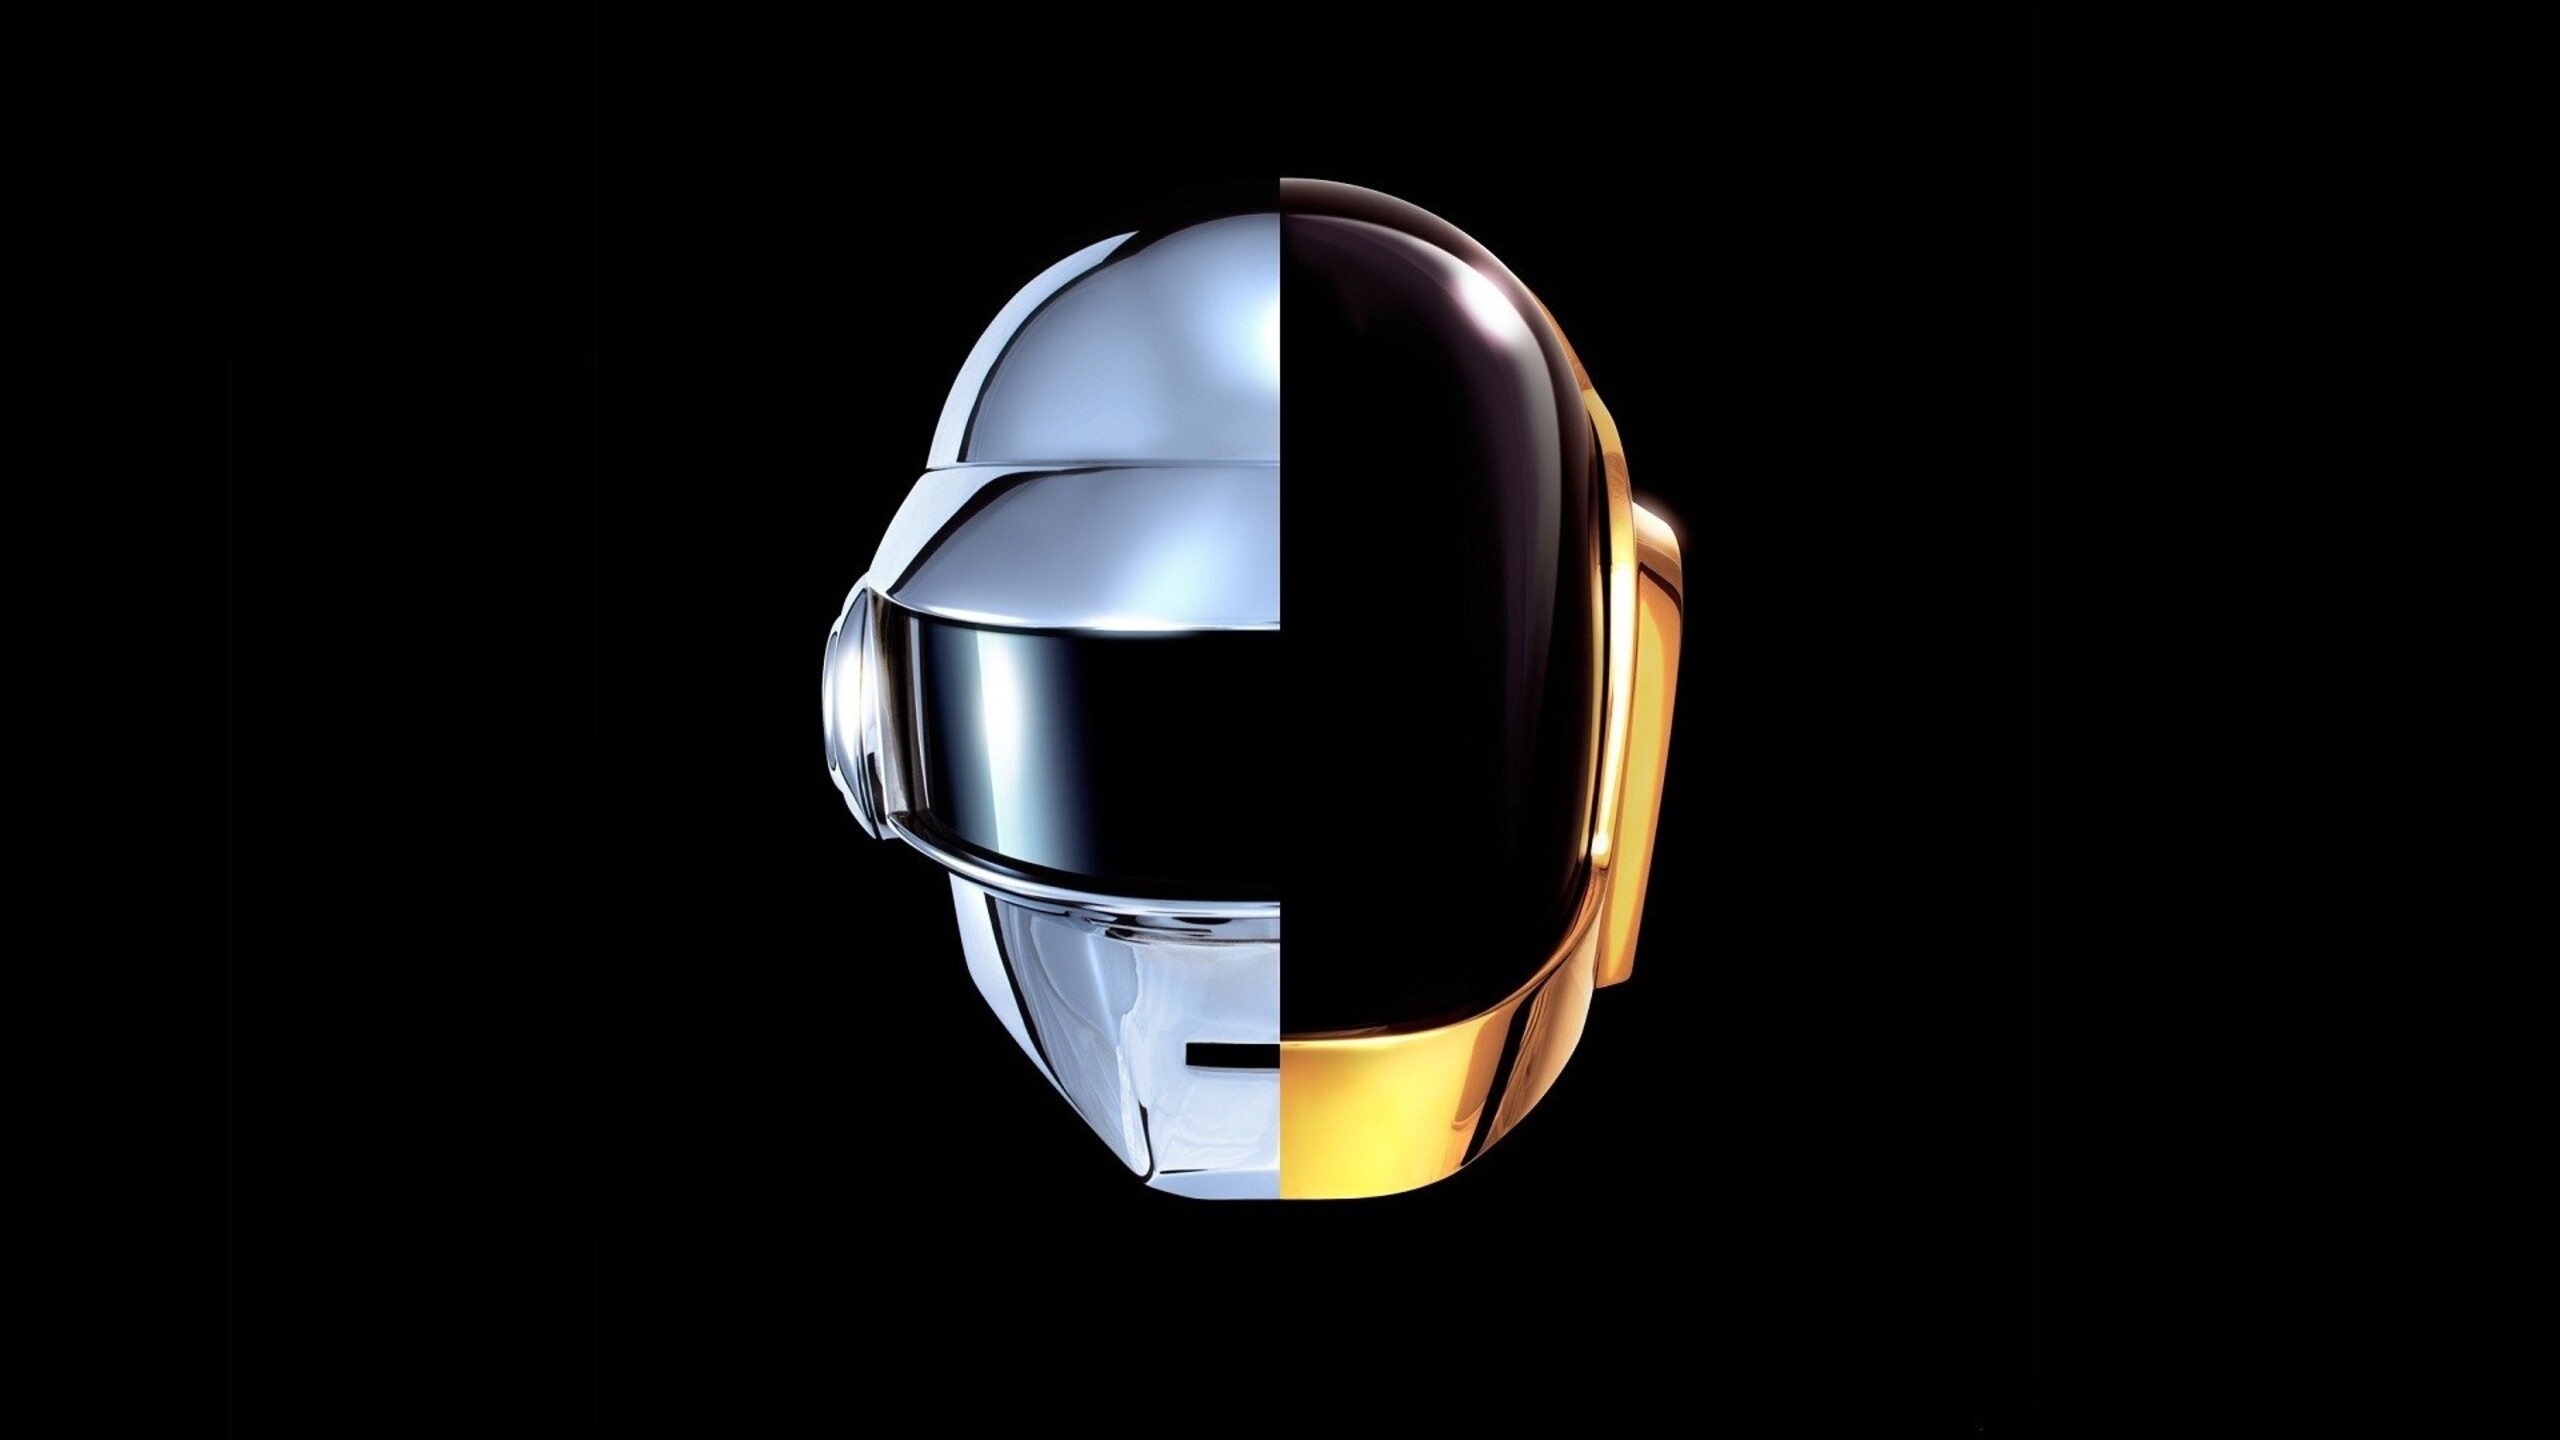 2560x1440 Daft Punk 1440P Resolution HD 4k Wallpapers ...